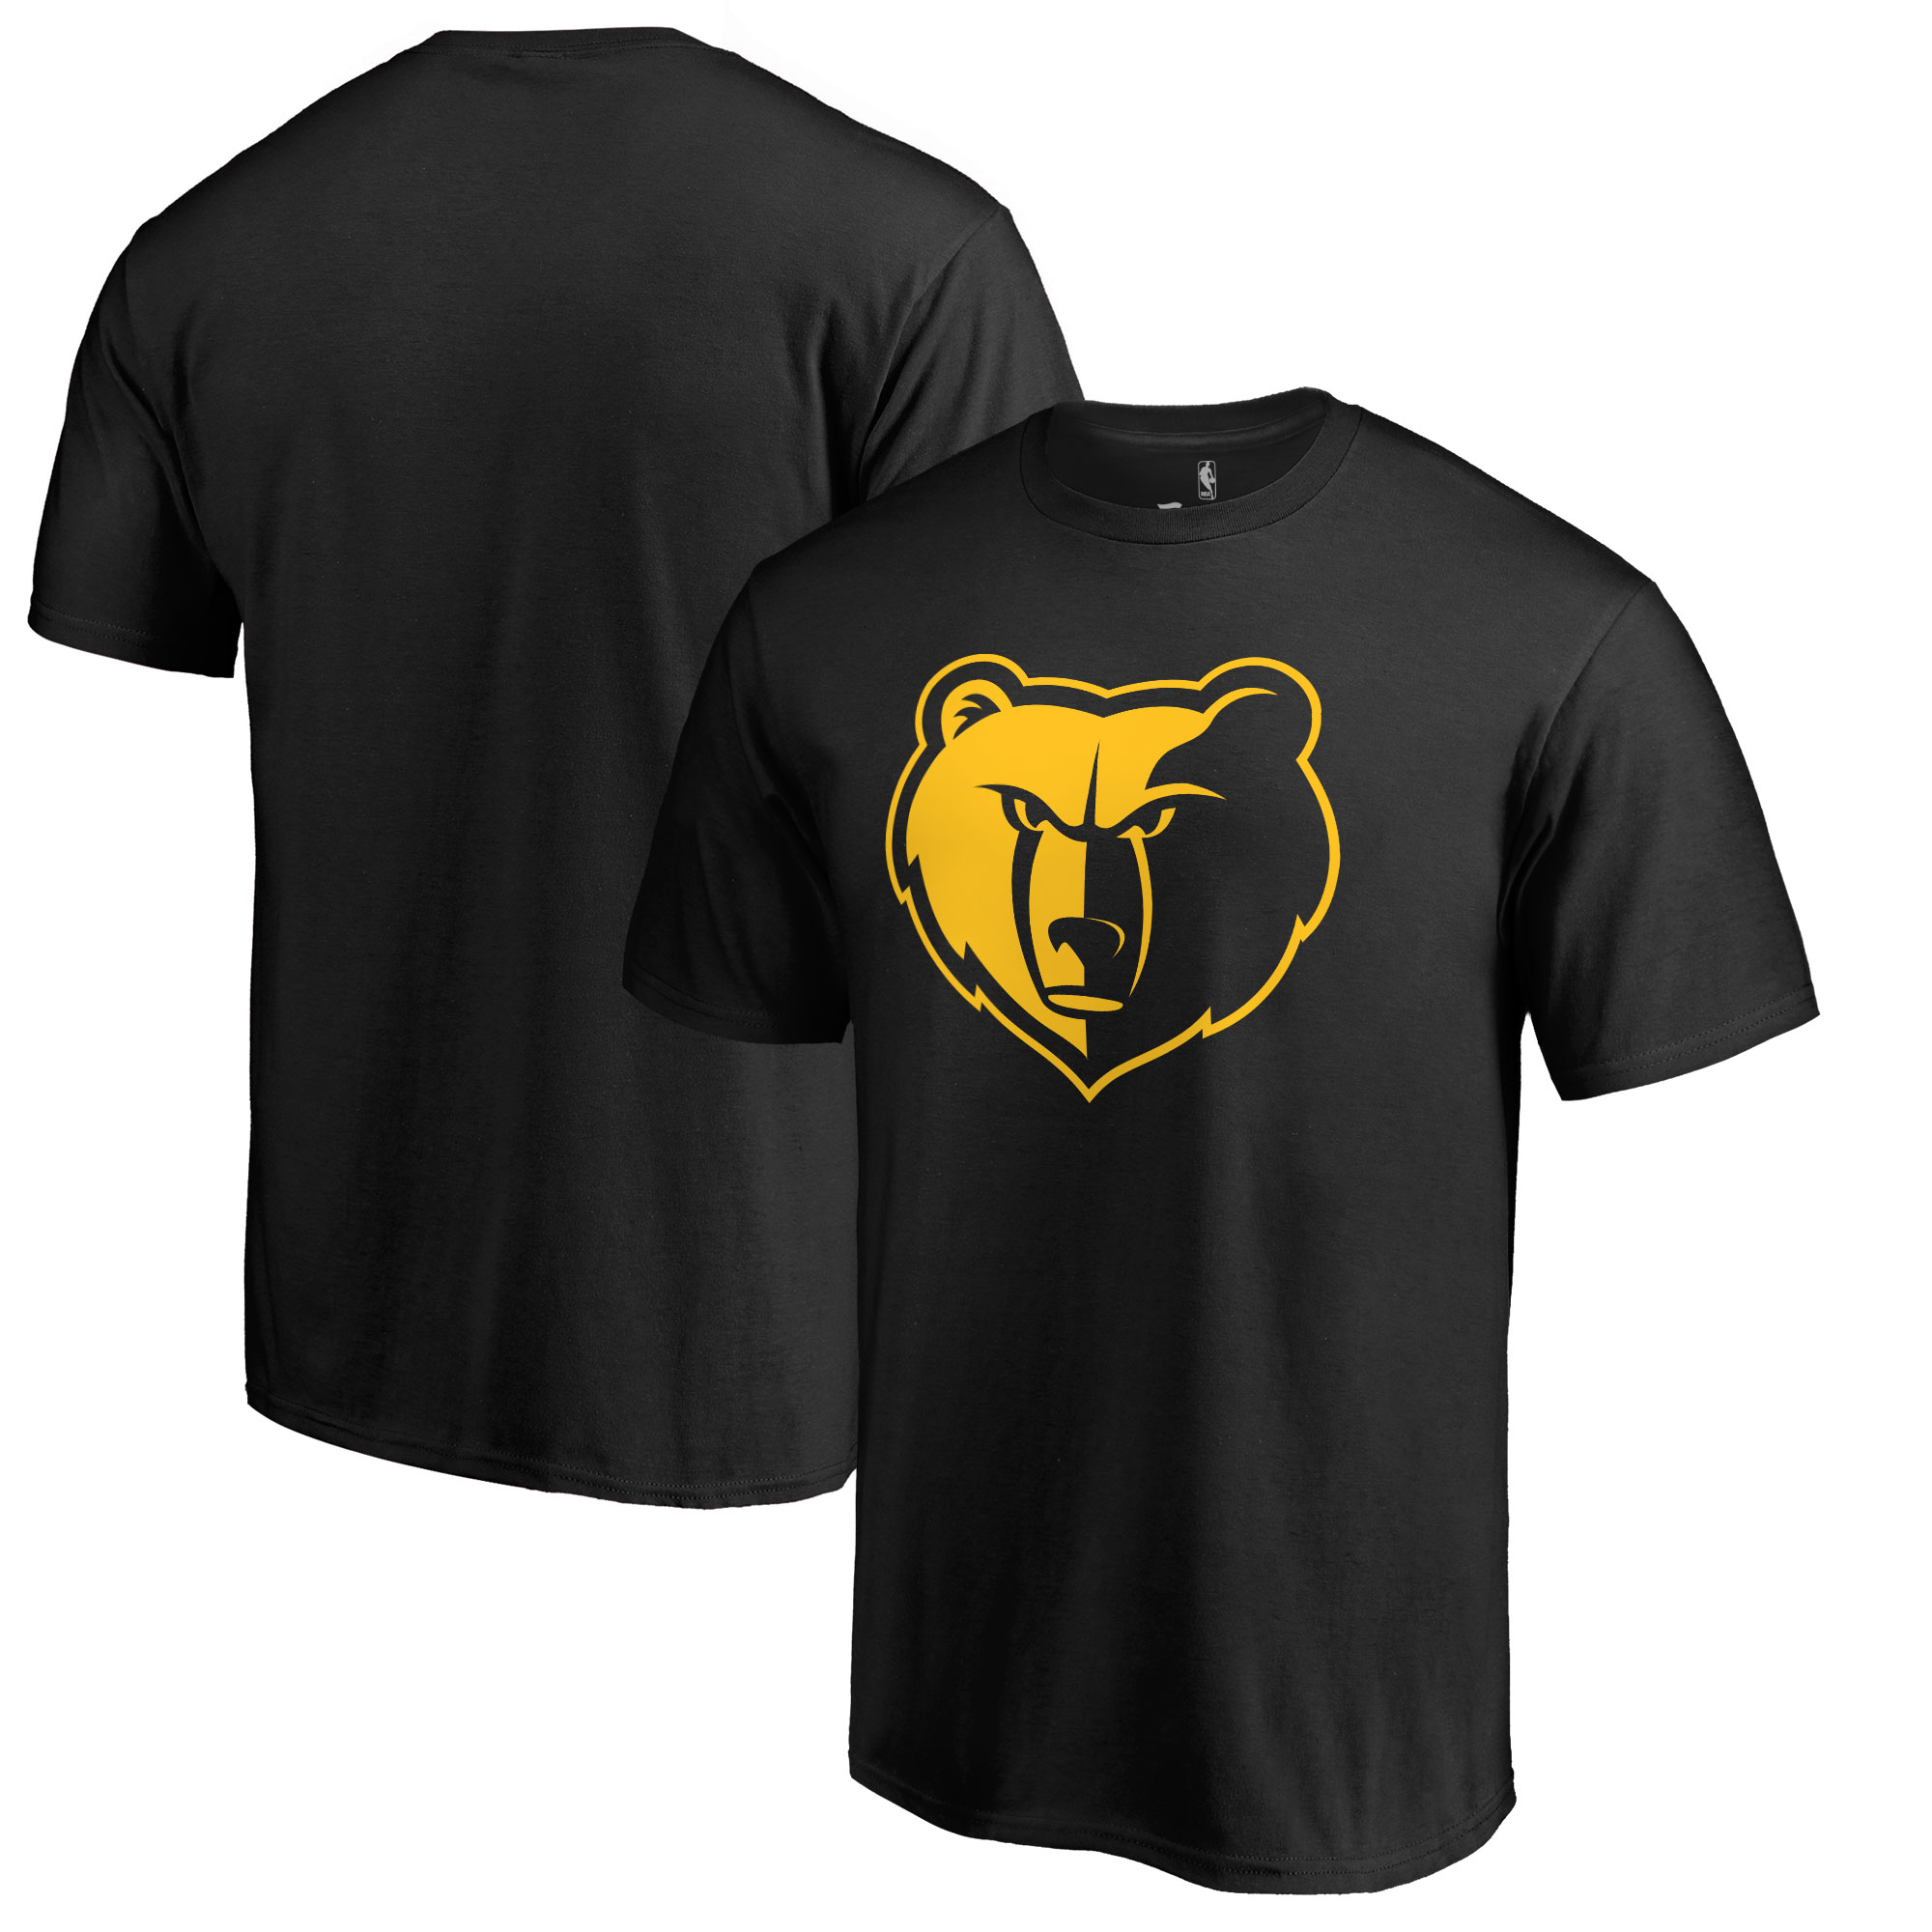 Memphis Grizzlies Fanatics Branded Taylor T-Shirt - Black